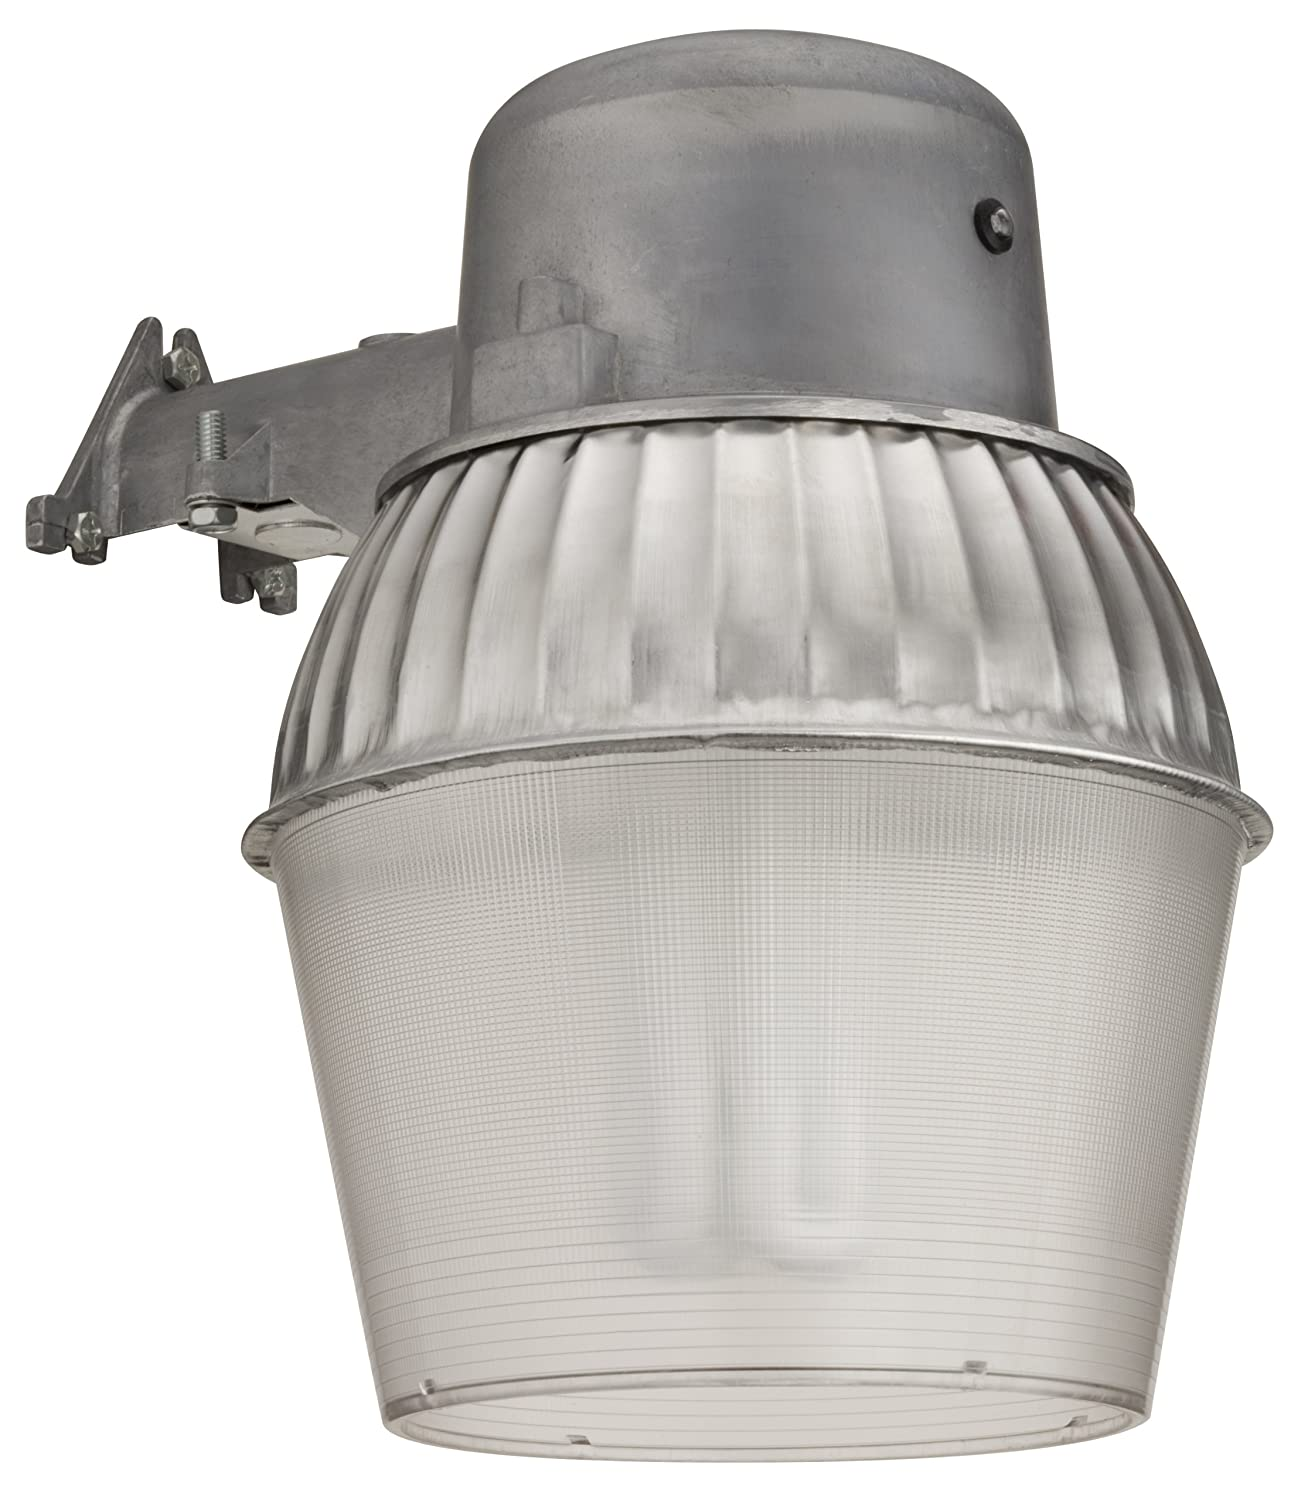 Lithonia lighting oals10 65f 120 p lp m4 standard outdoor area light lithonia lighting oals10 65f 120 p lp m4 standard outdoor area light with 65 watt compact fluorescent compact quad tube commercial street and area aloadofball Choice Image